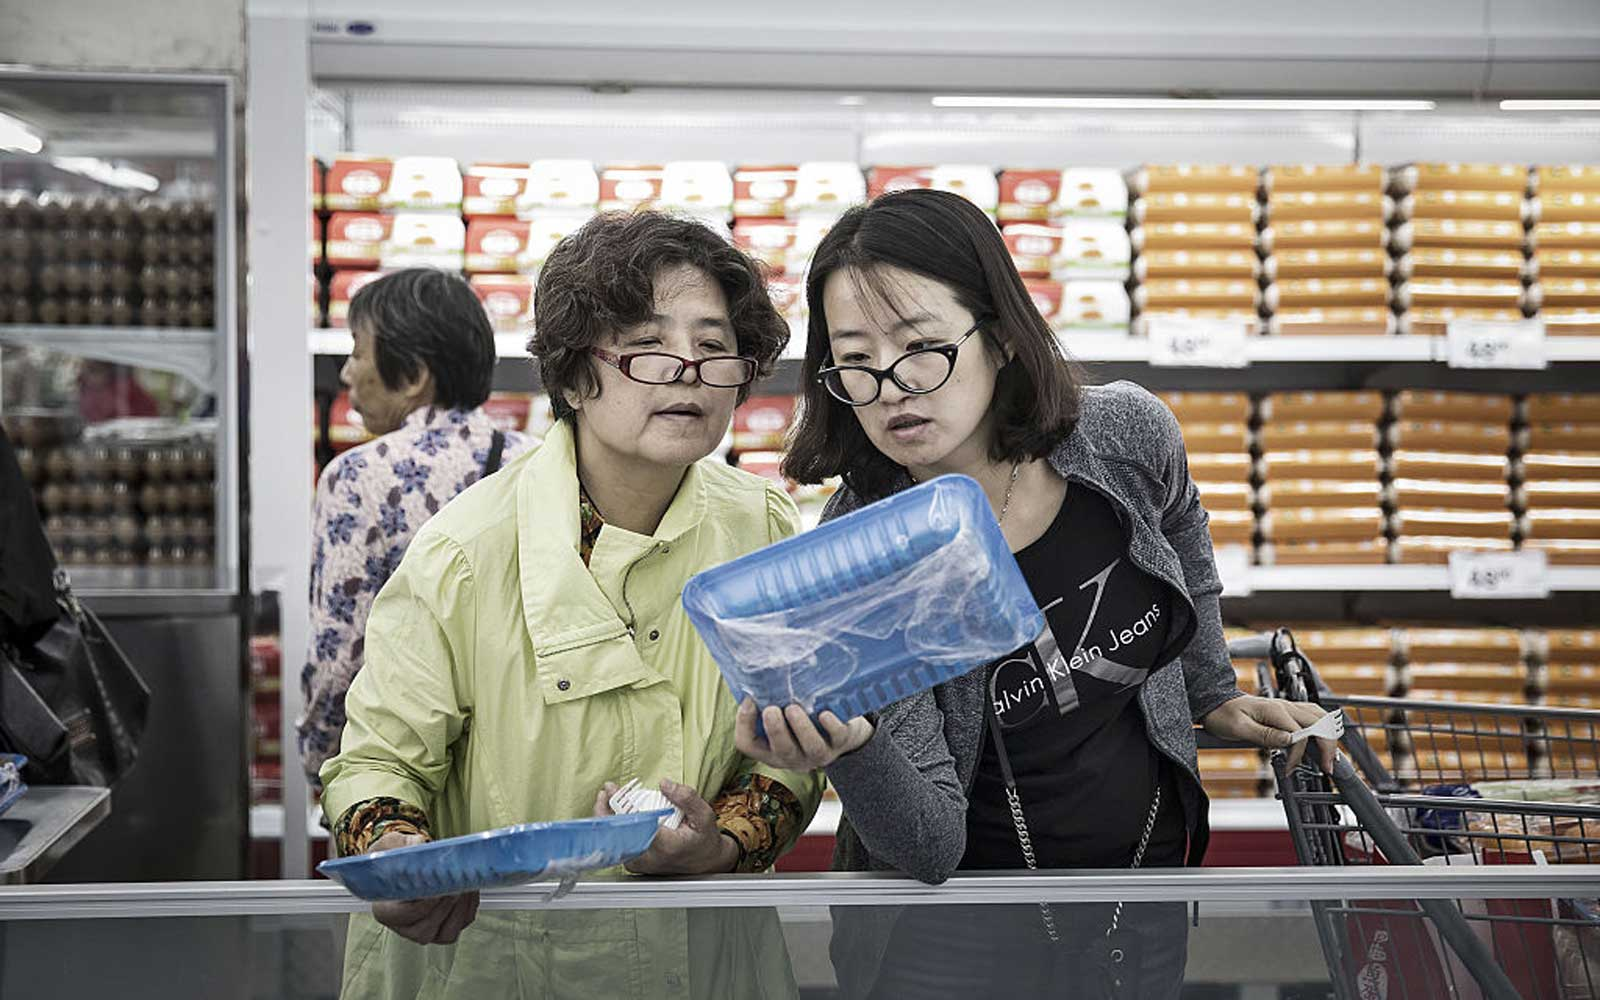 Opening Of A Walmart Stores Inc. Sam's Club Store In China